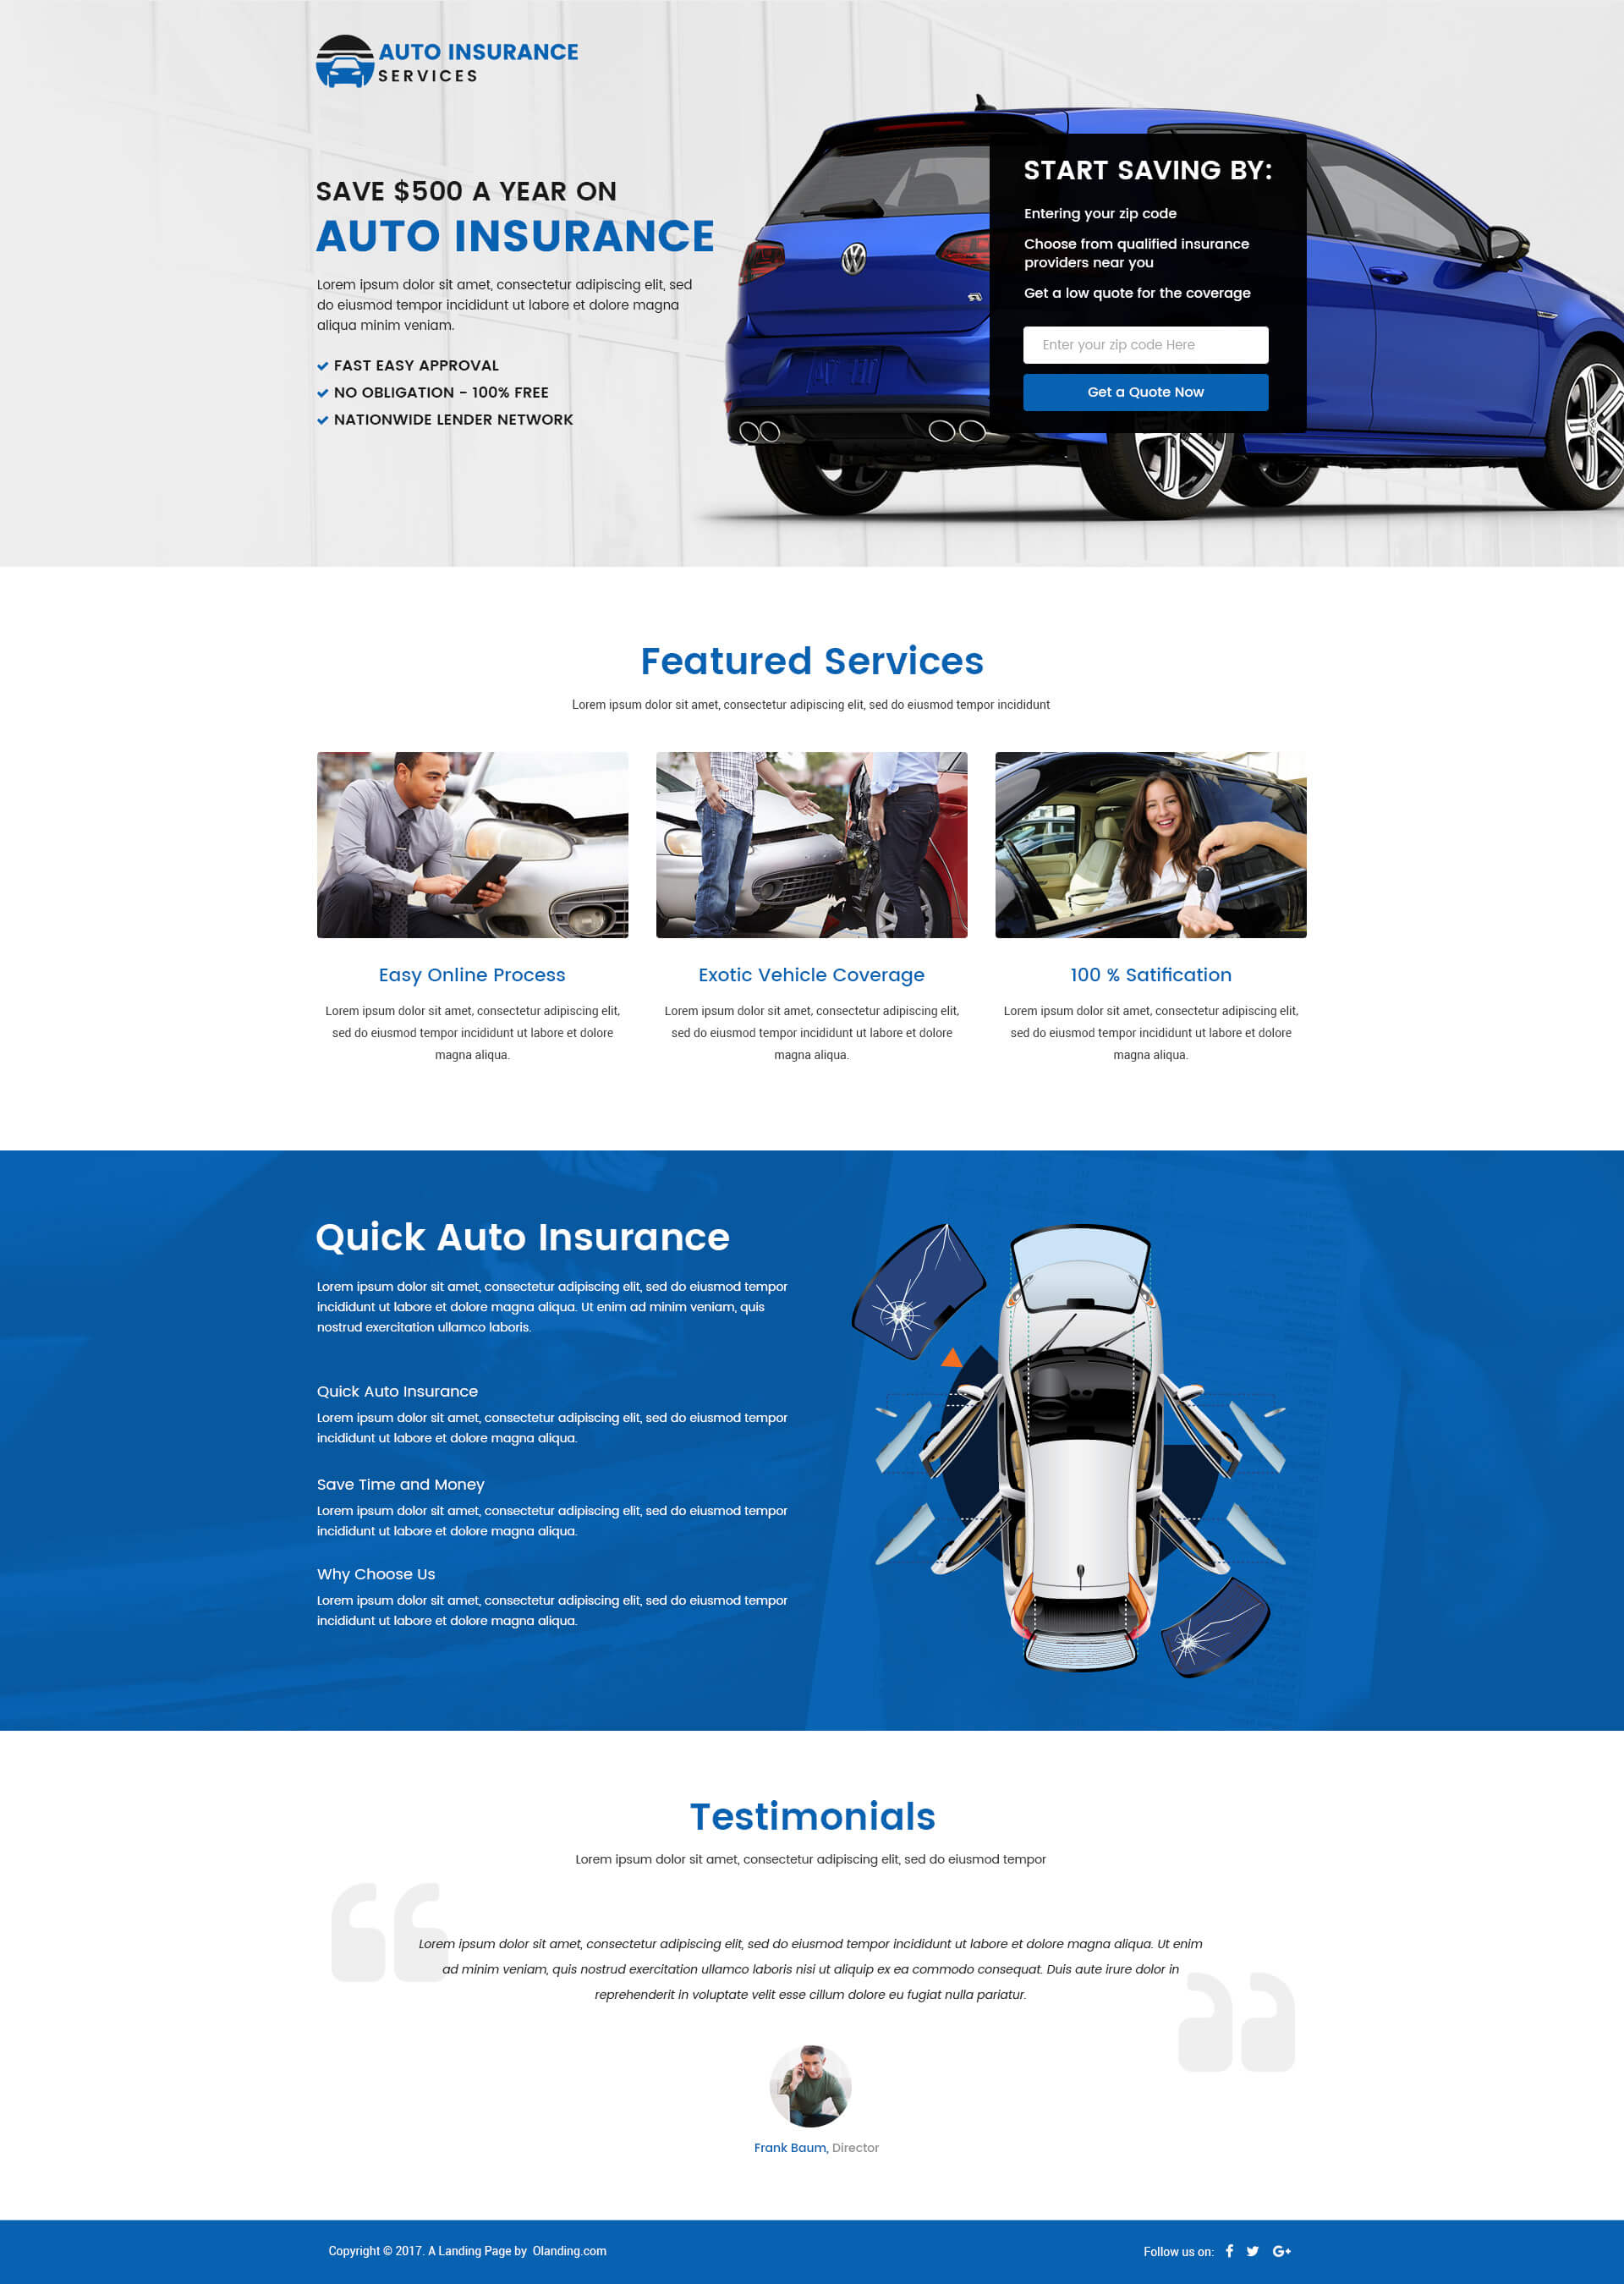 responsive auto insurance landing page design template for your